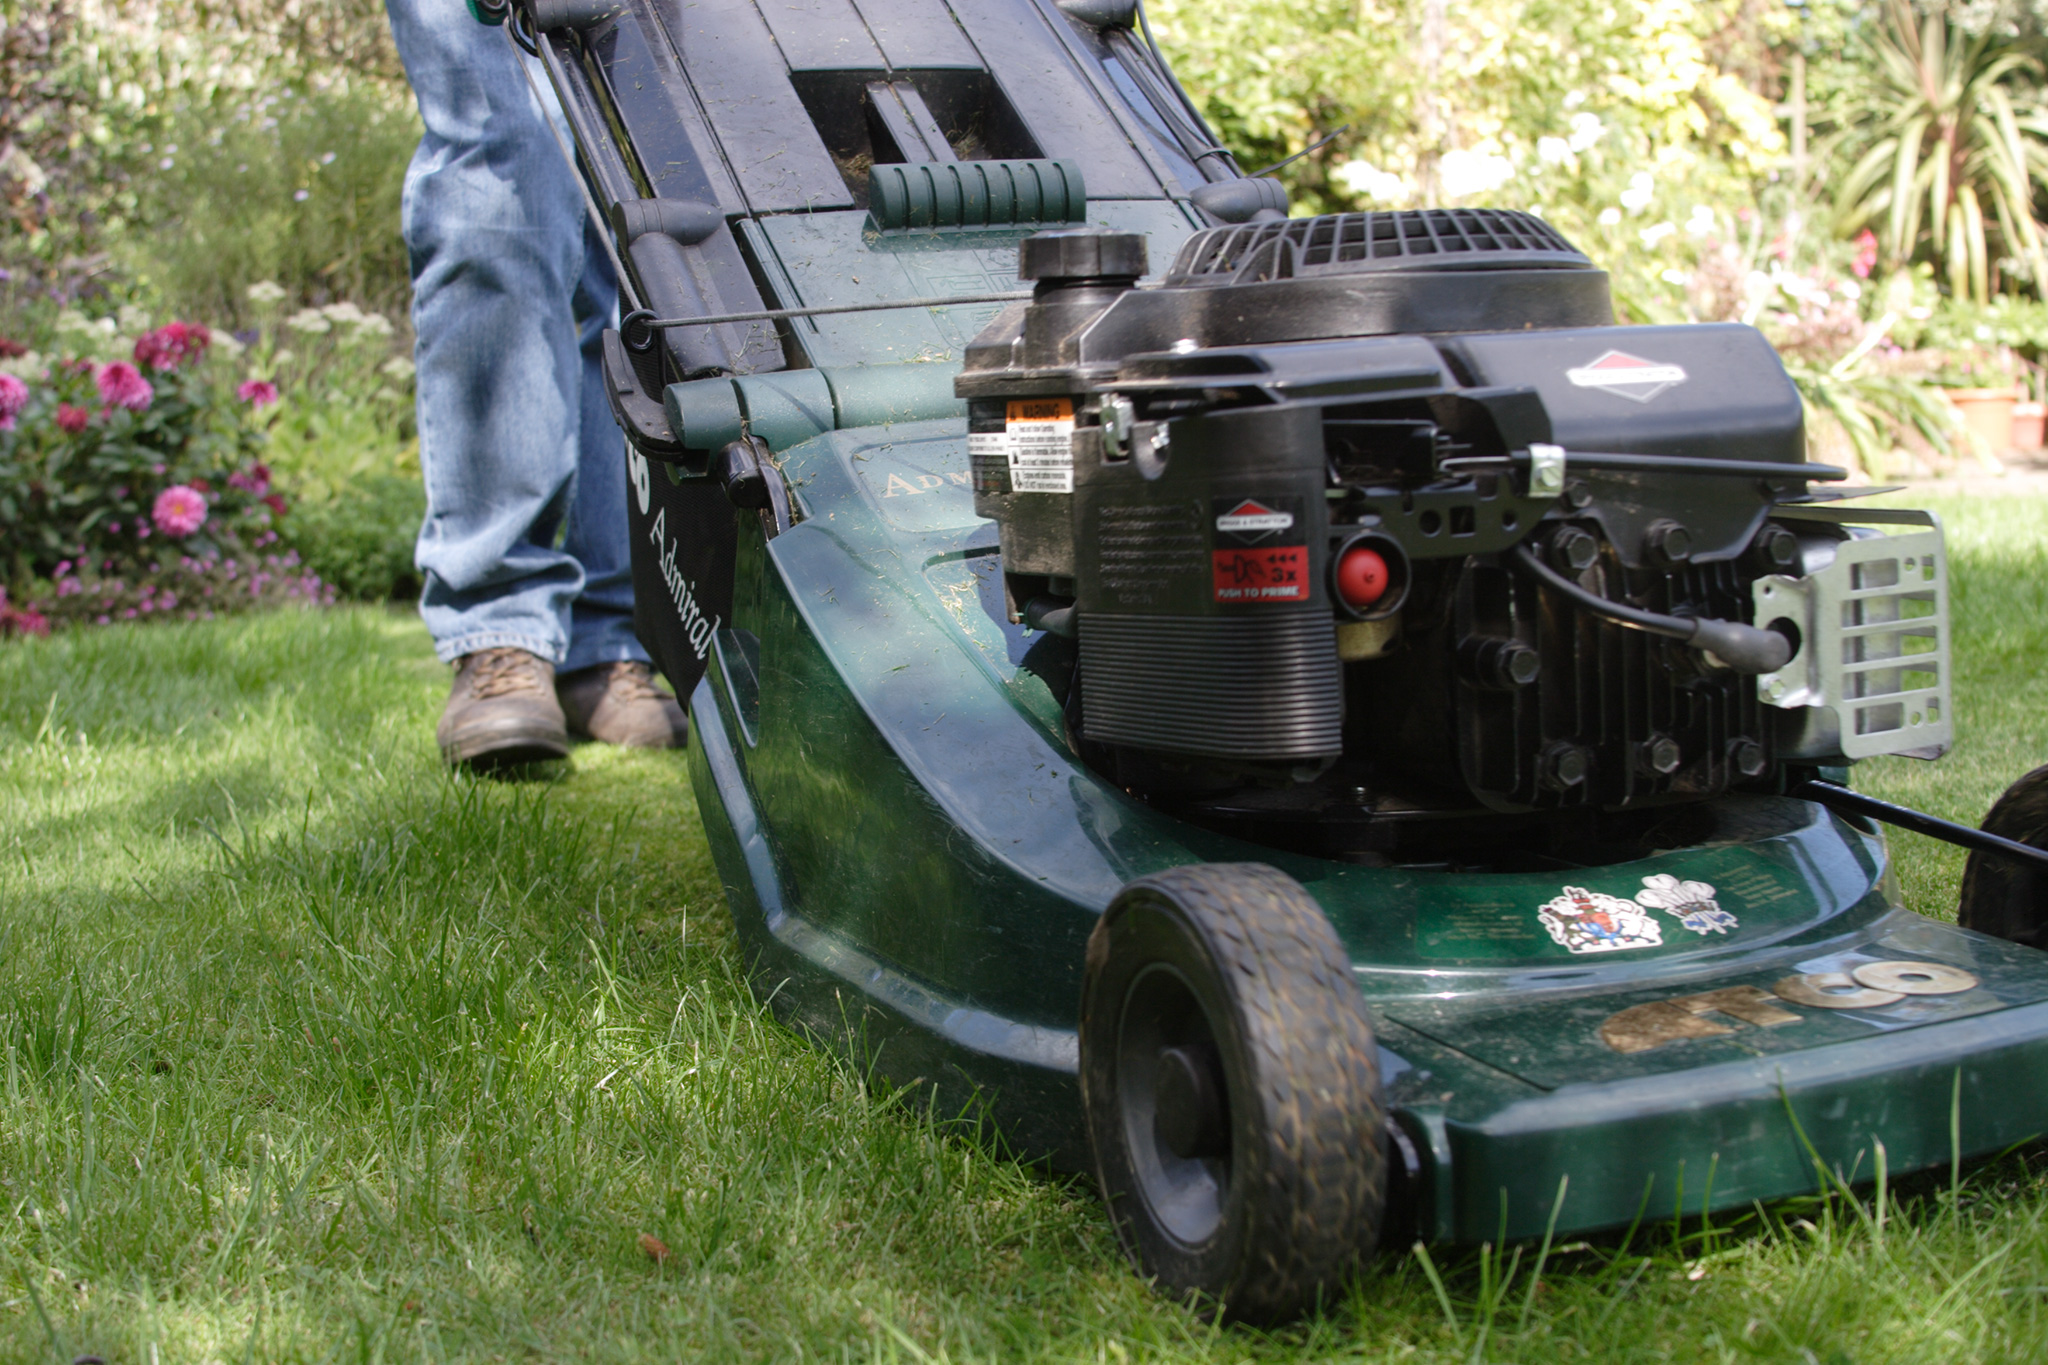 Raise the mower blades to keep grass long